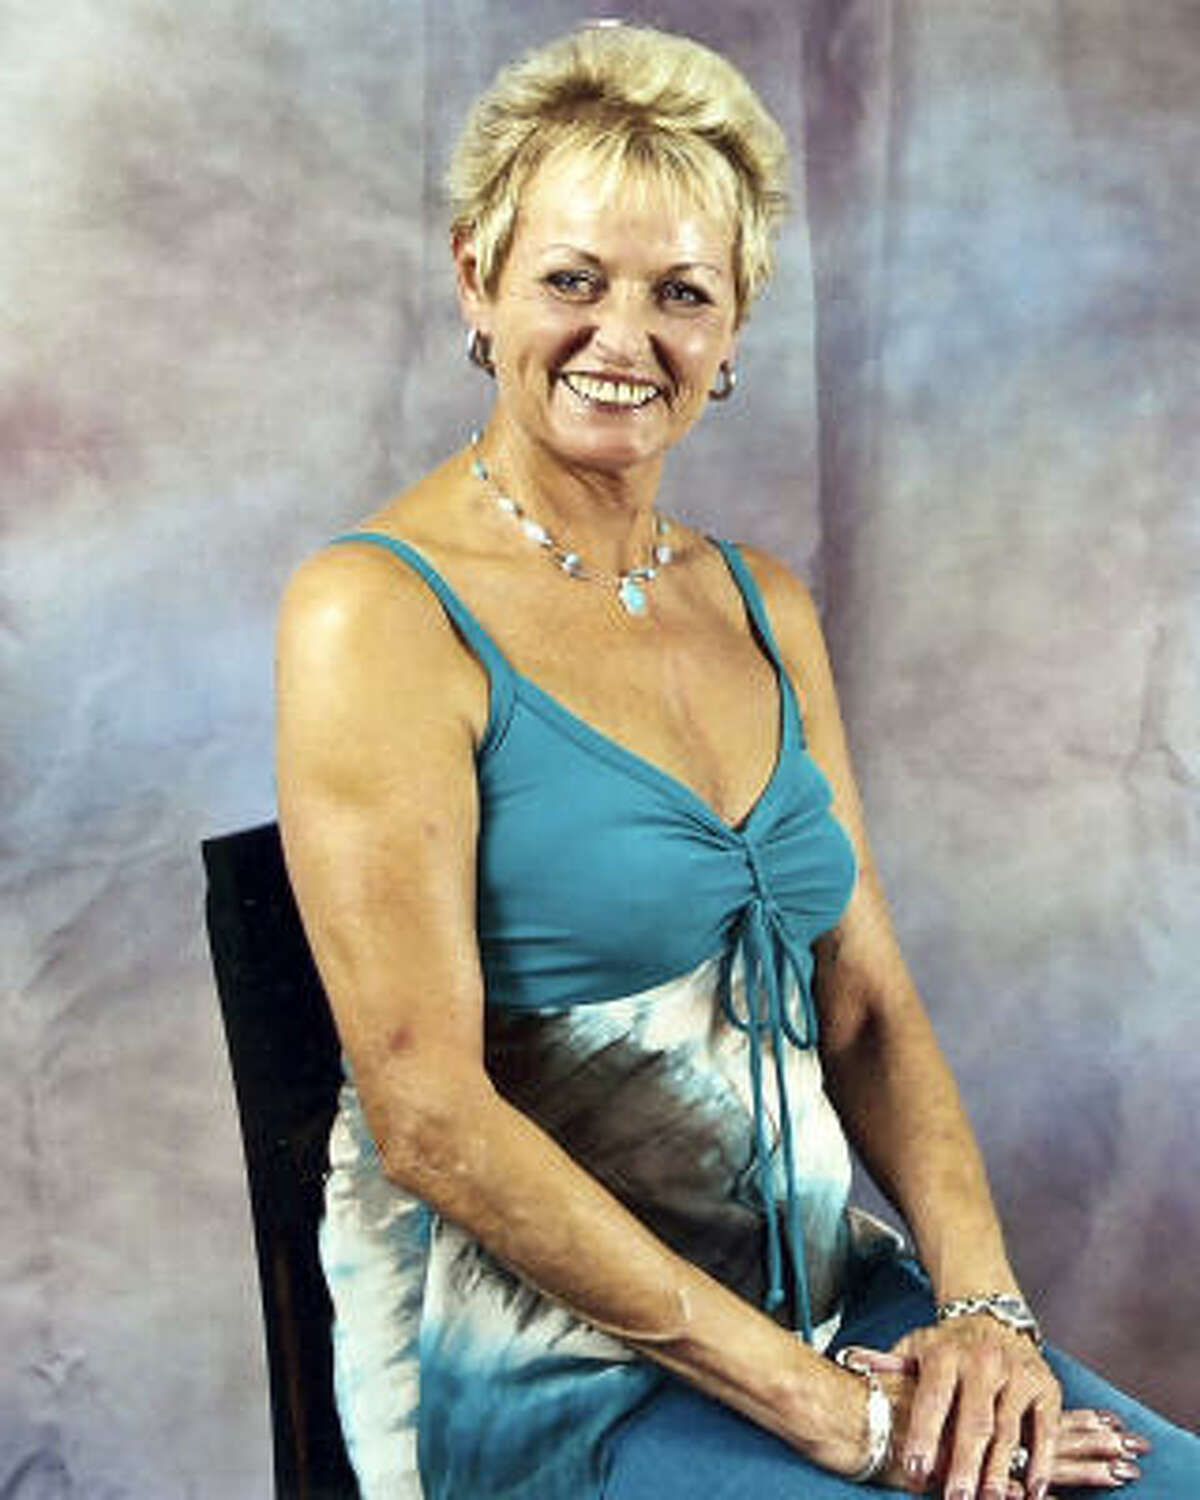 Sharon Moore, 58 Died in 2006 in Moses Lake, Wa., from what the coroner said was an overdose of painkillers that had been increasingly prescribed by her doctor.